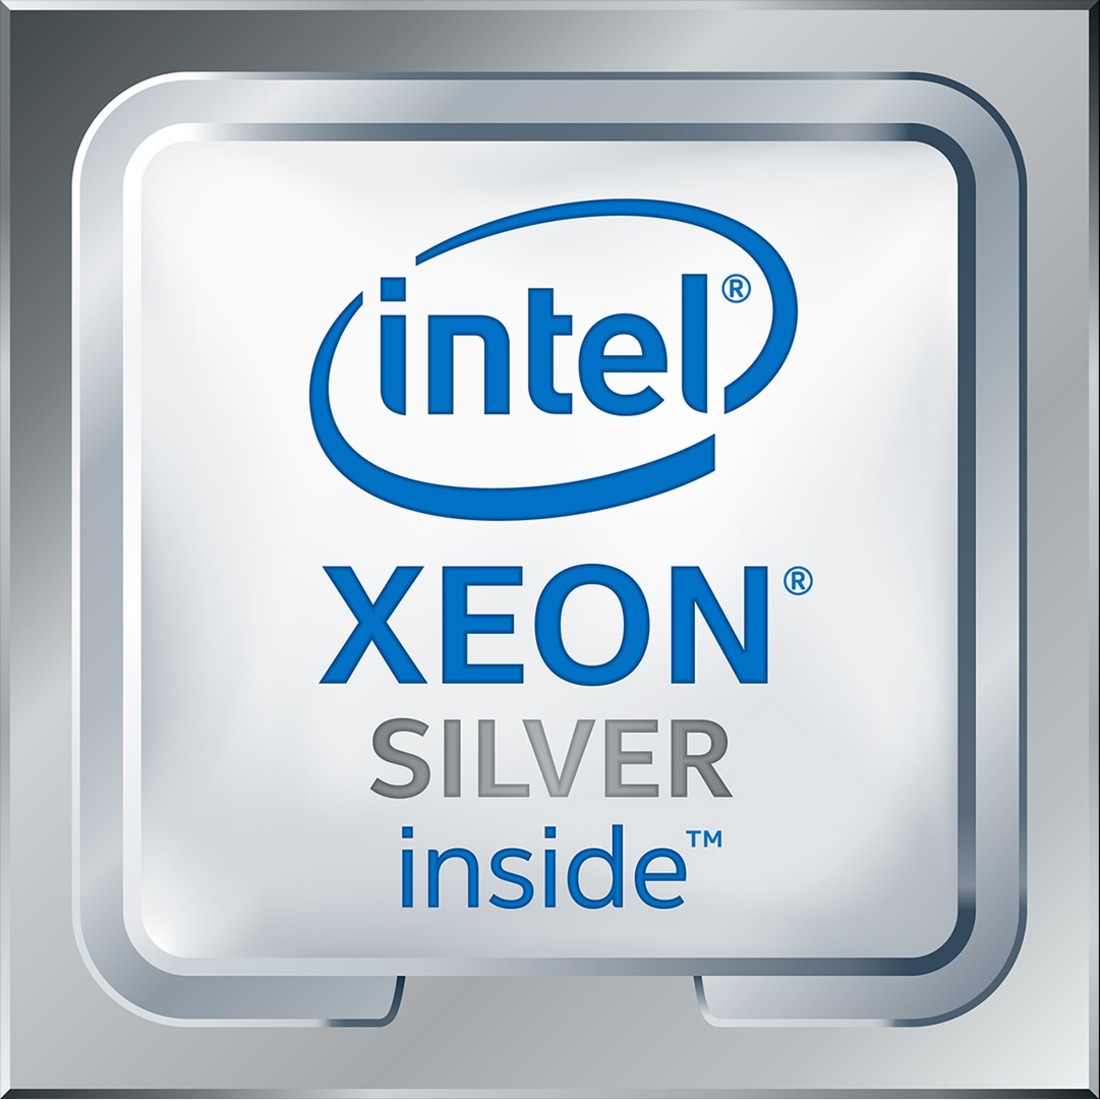 HPE DL360 Gen10 Intel Xeon-Silver 4110 (2.1GHz/8-core/85W) Processor Kit 860653-B21